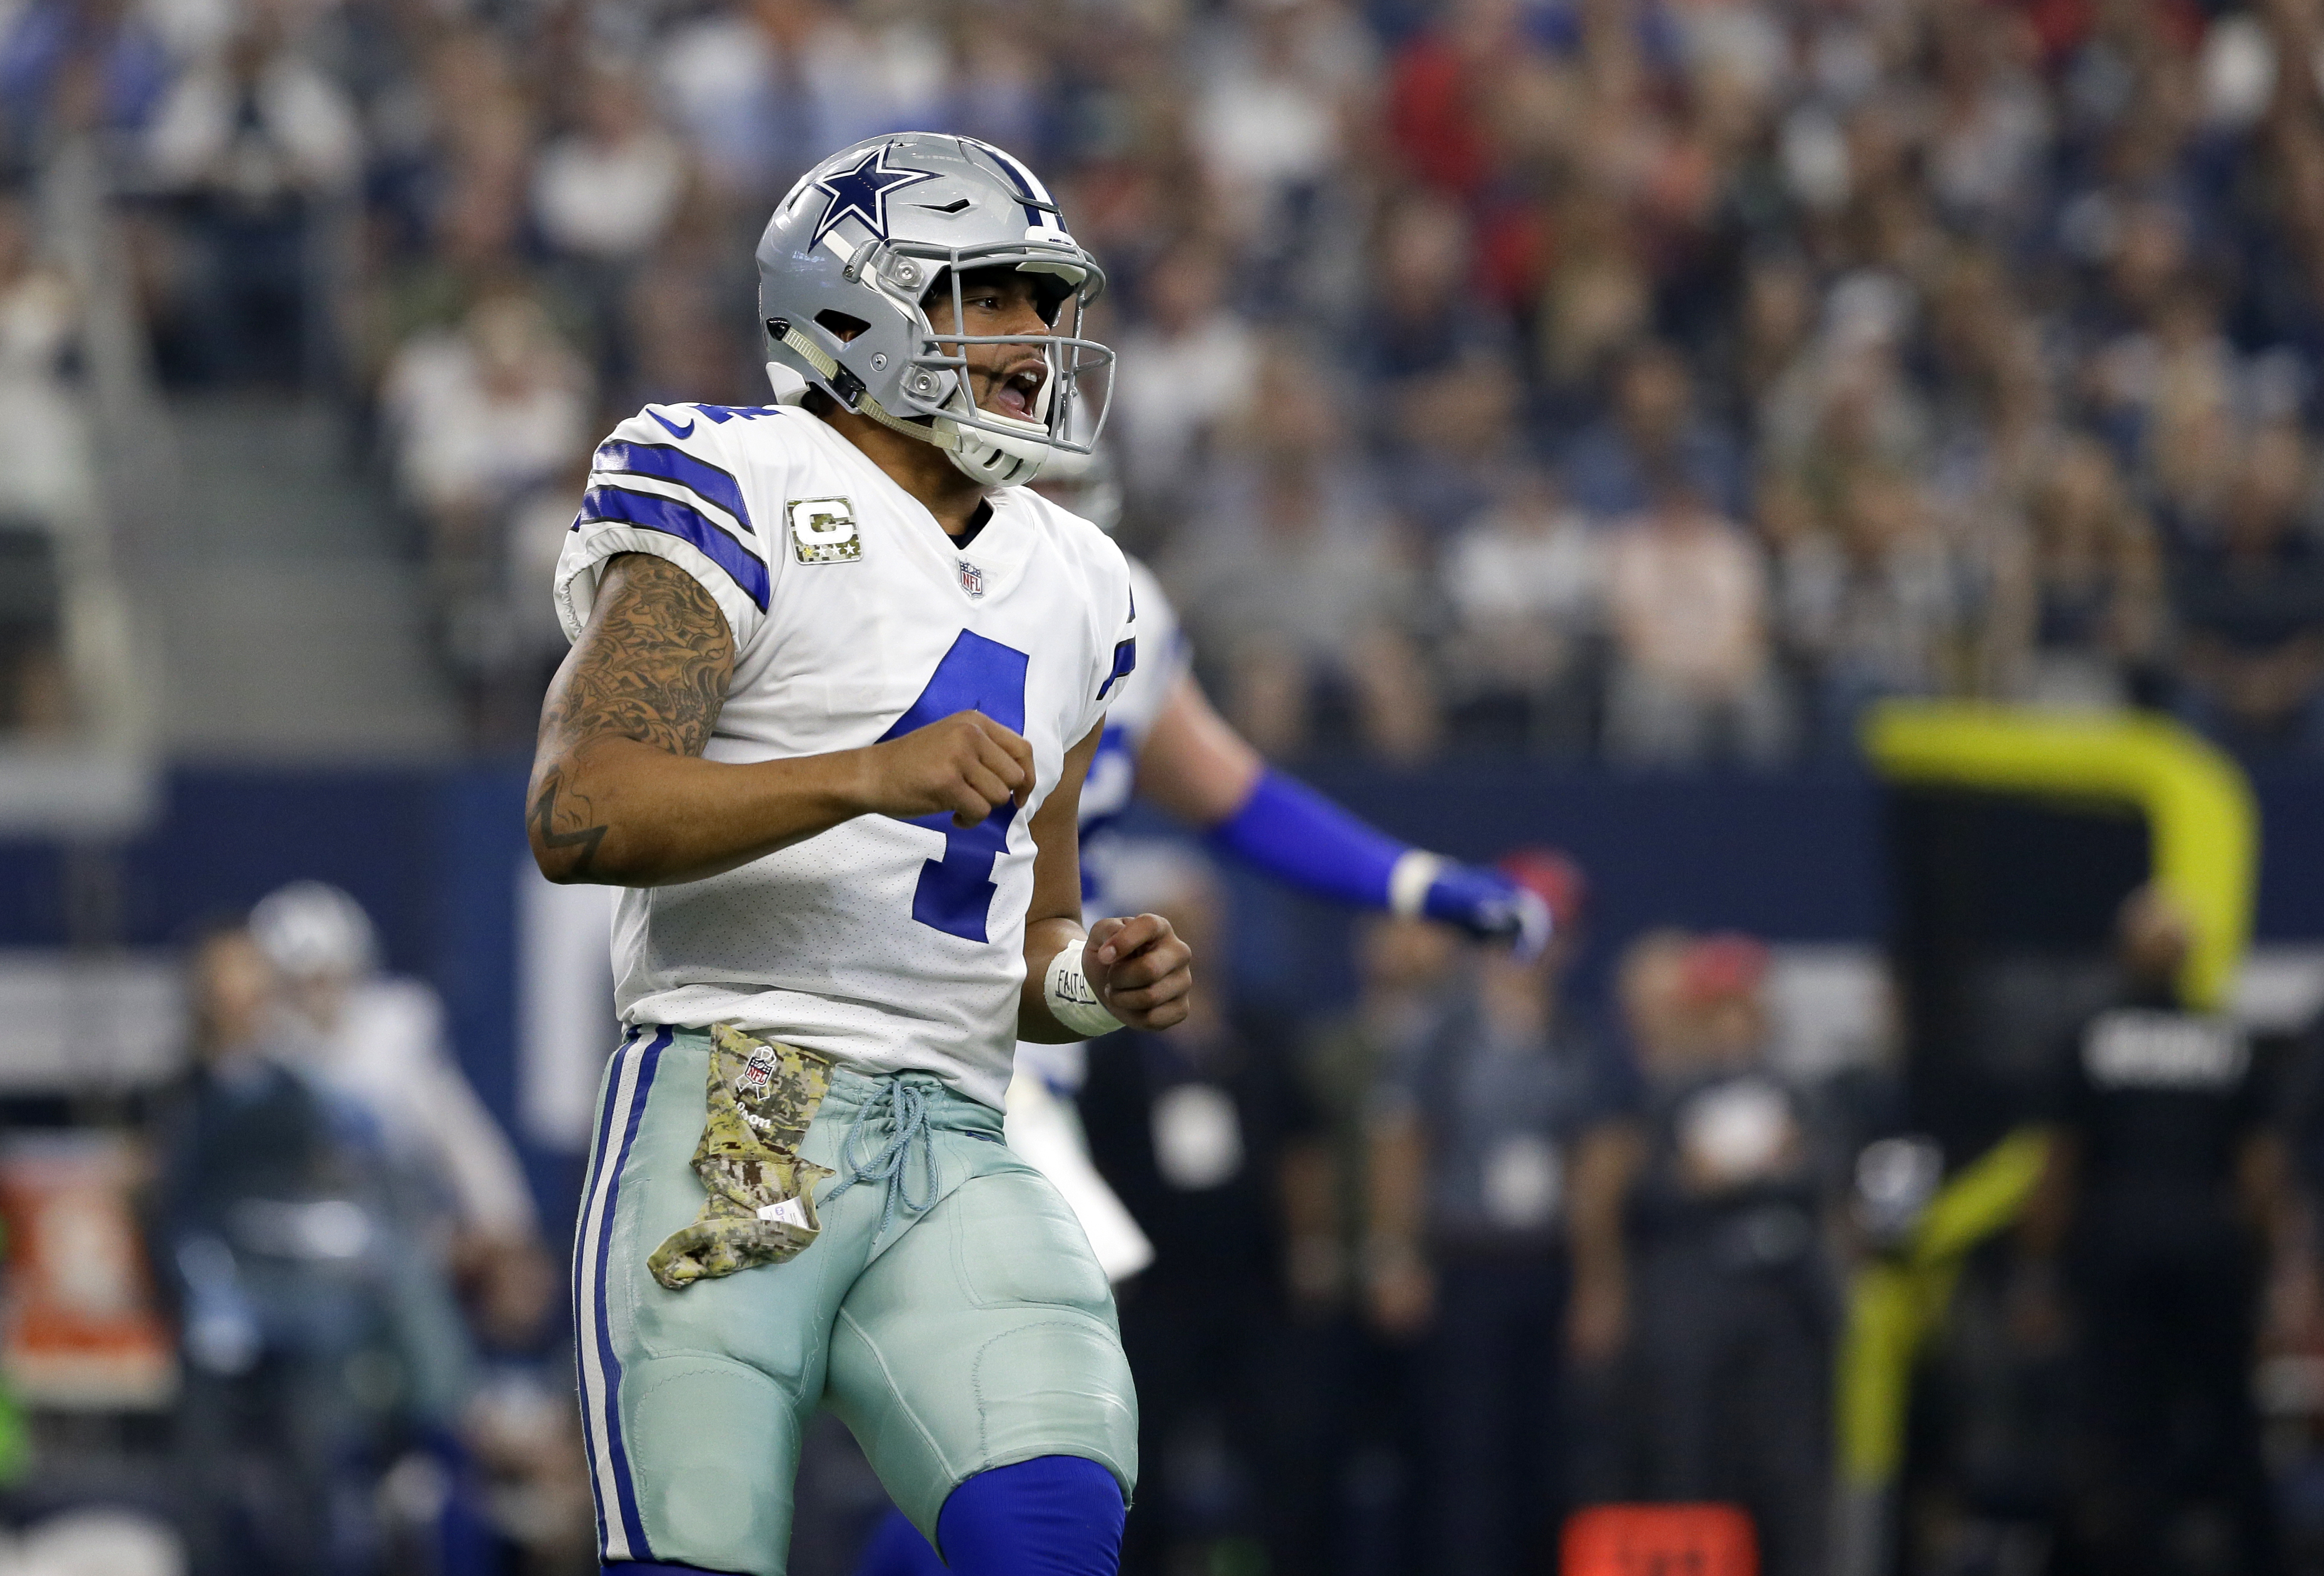 NFL against the spread picks: Cowboys need to beat the Eagles